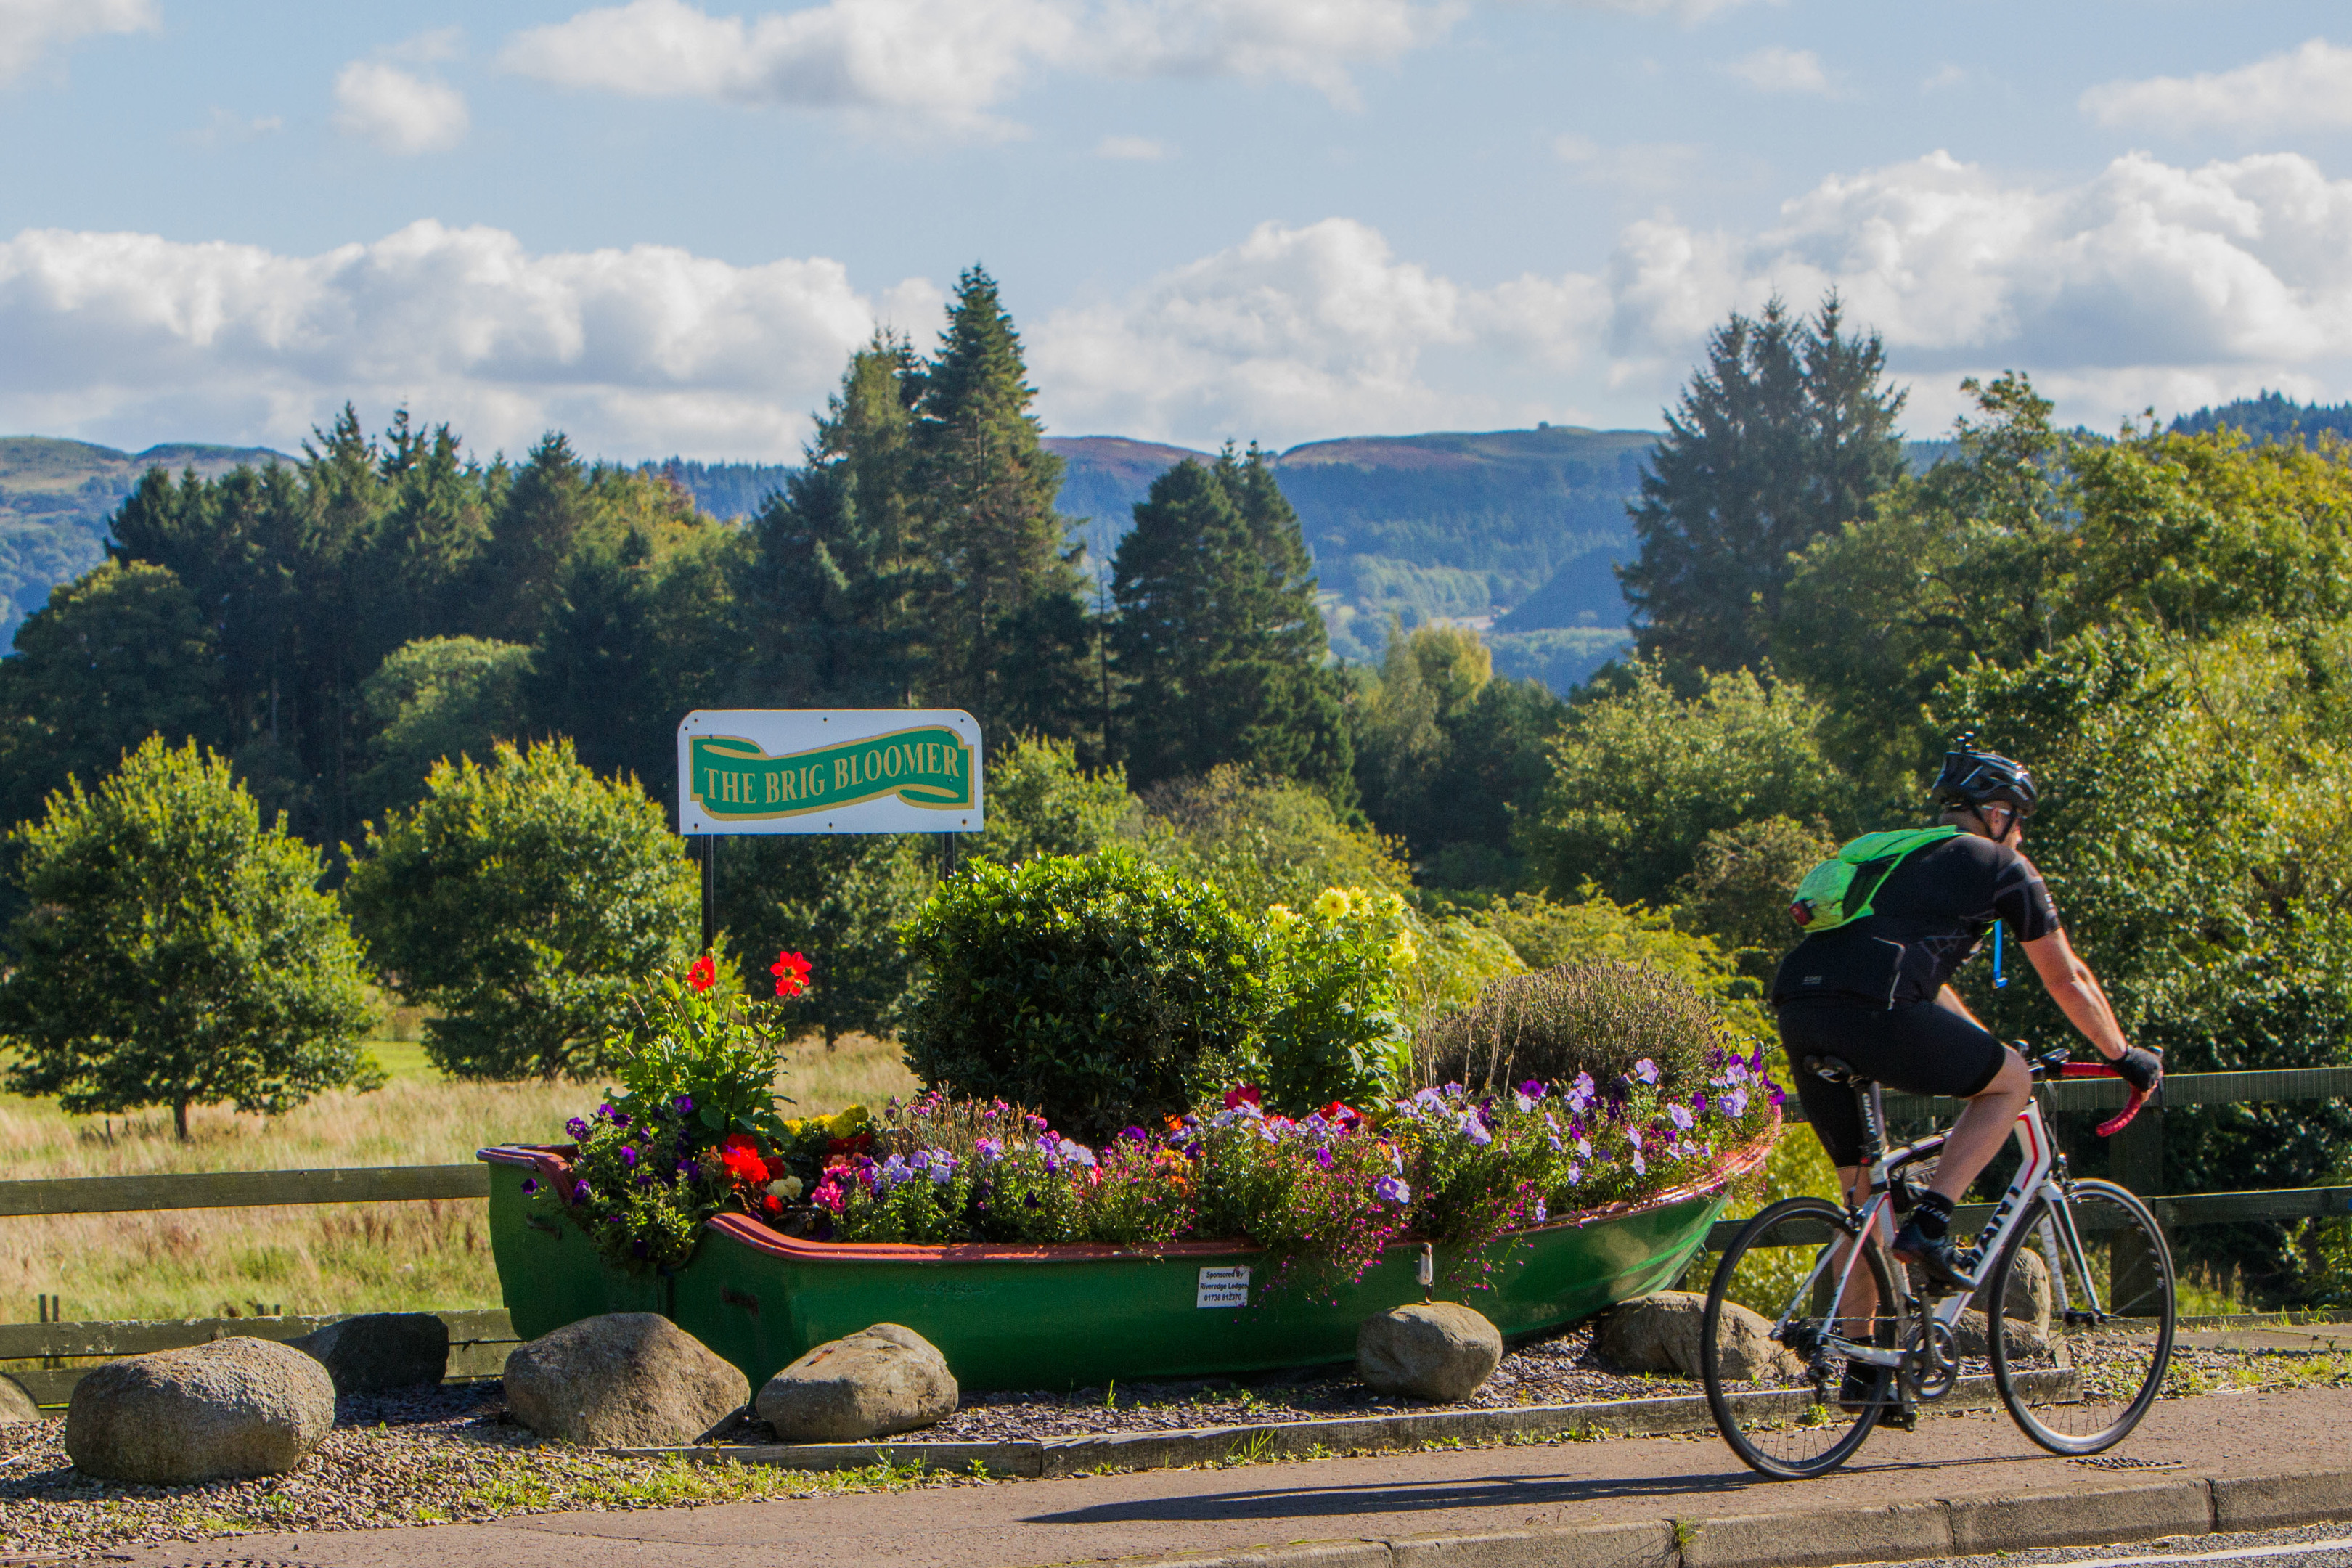 Brig in Bloom enjoyed gold medal success at the 2017 Take a Pride in Perthshire awards. Now committee members hope to deliver a new community garden by the end on June.